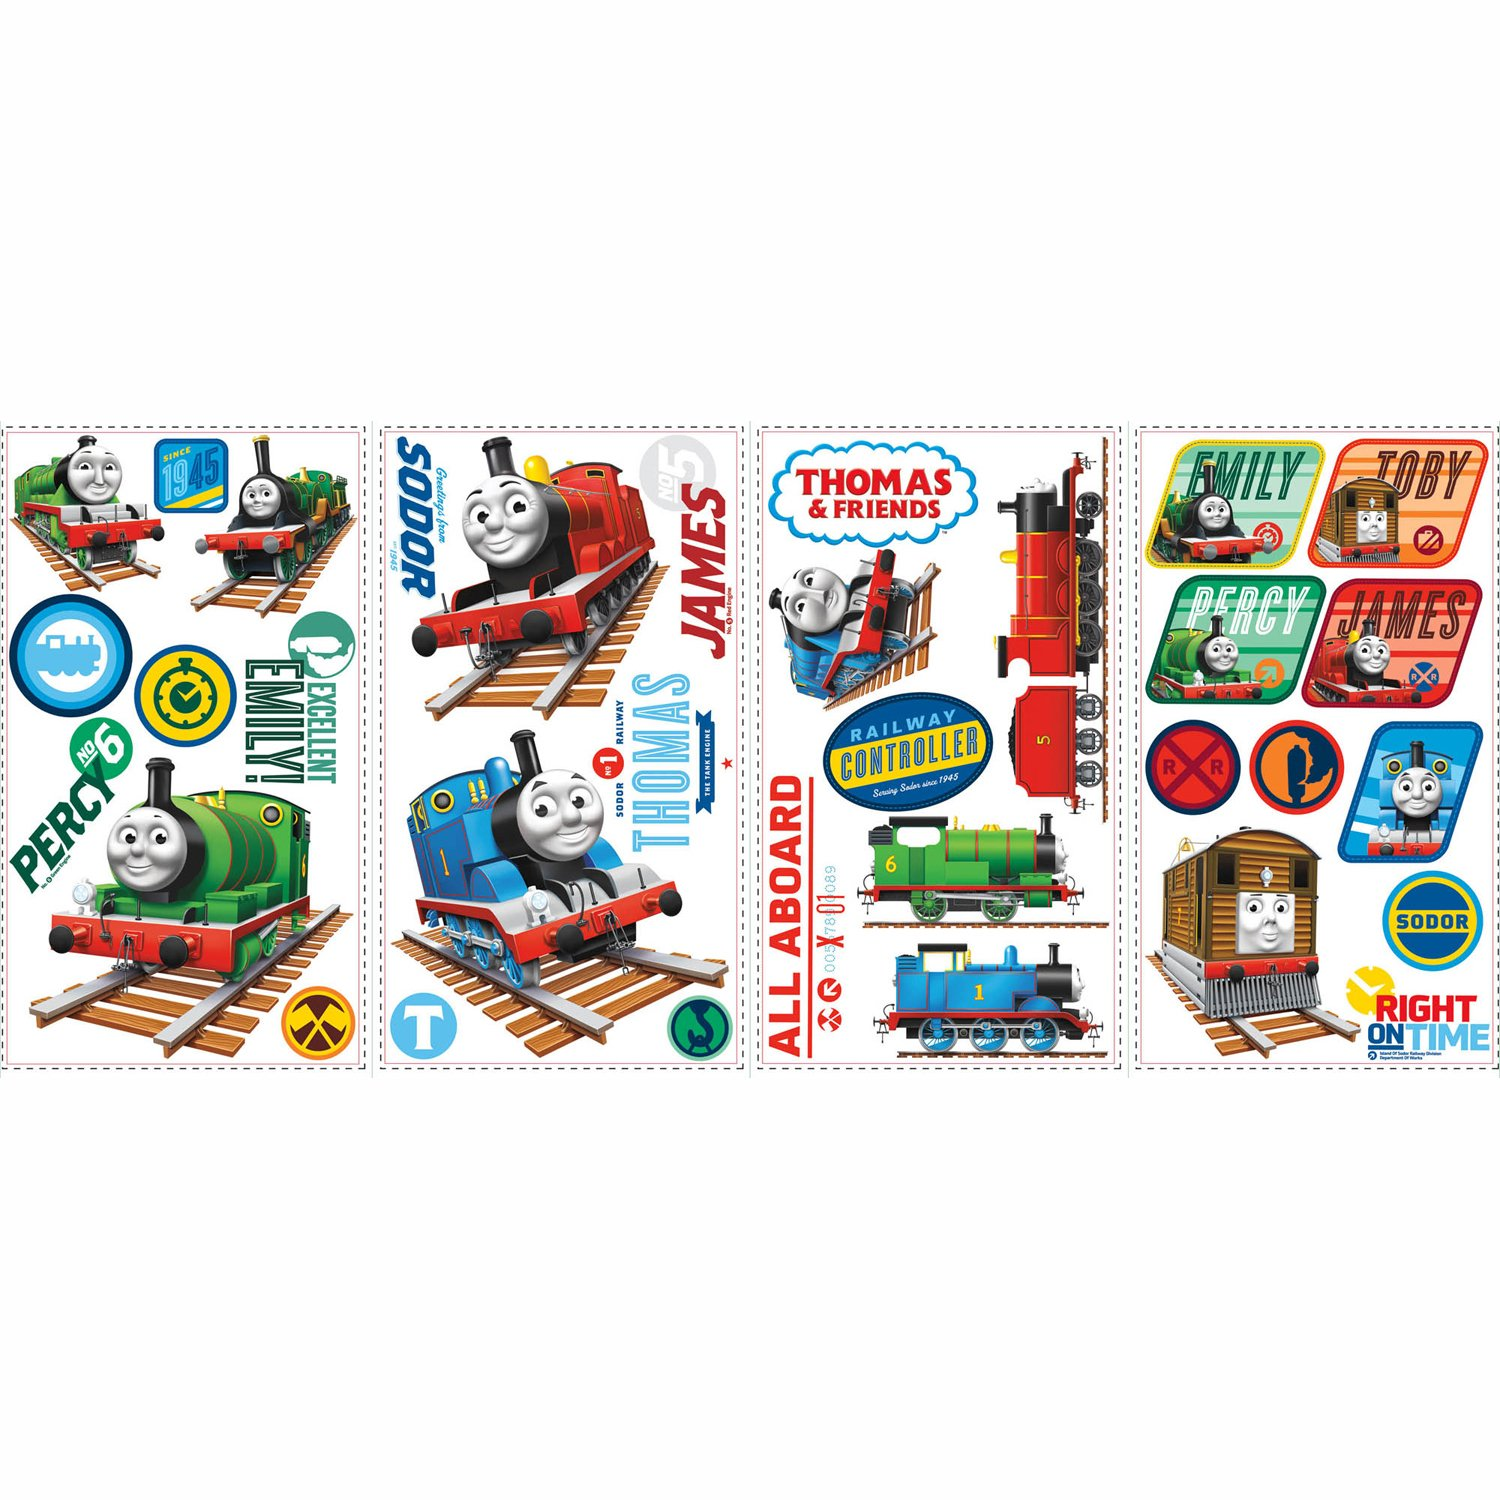 Exceptional Roommates Rmk1831Scs Thomas The Tank Engine Peel And Stick Wall Decals, 33  Count   Decorative Wall Appliques   Amazon.com